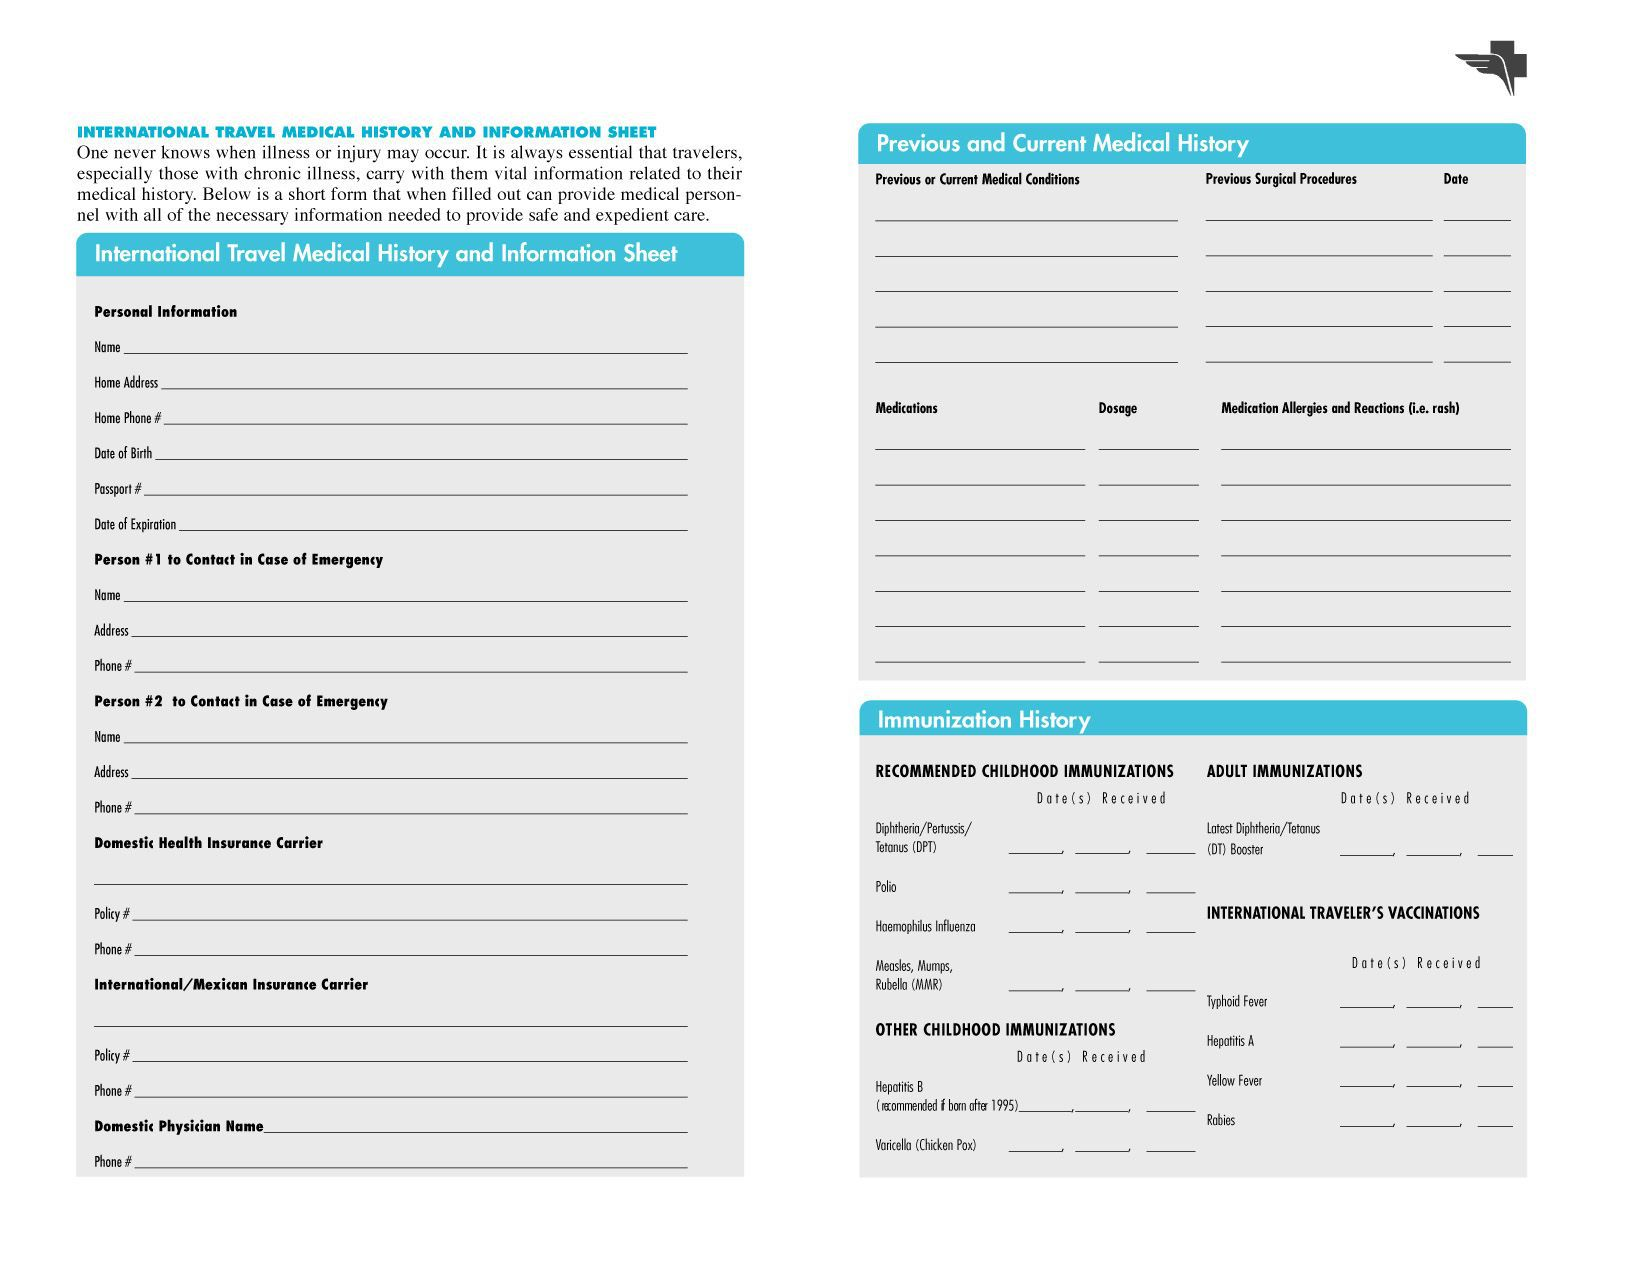 004 Magnificent Family Medical History Template High Definition  Questionnaire Free ExcelFull